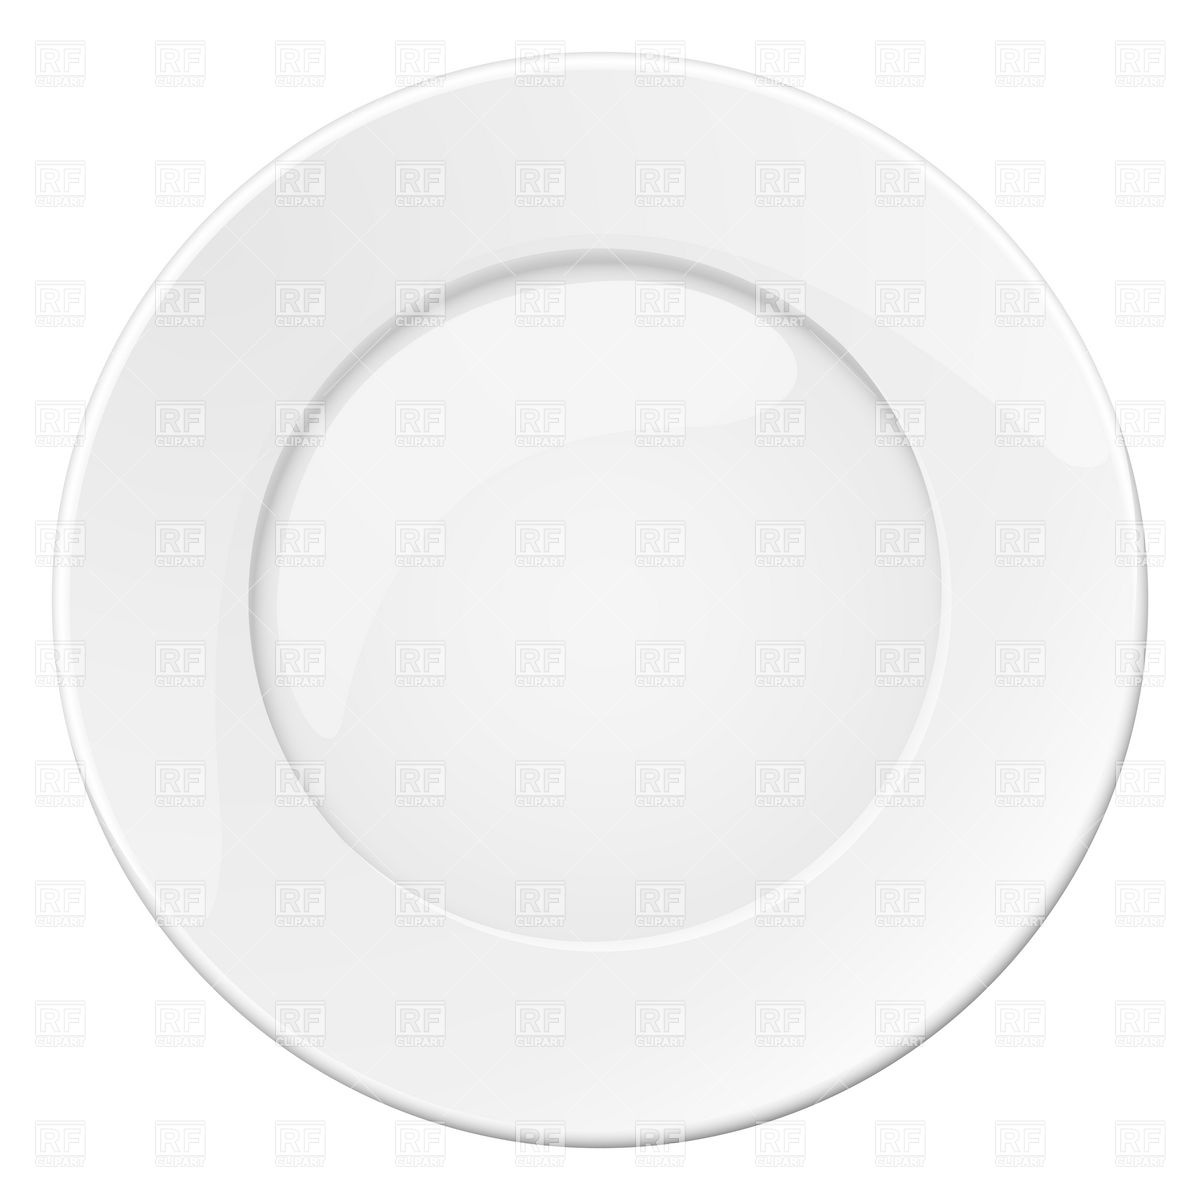 Crumbs Stock Photos and Images. 58,882 Crumbs pictures and royalty free photography available to ... |Empty Plate With Crumbs Clipart